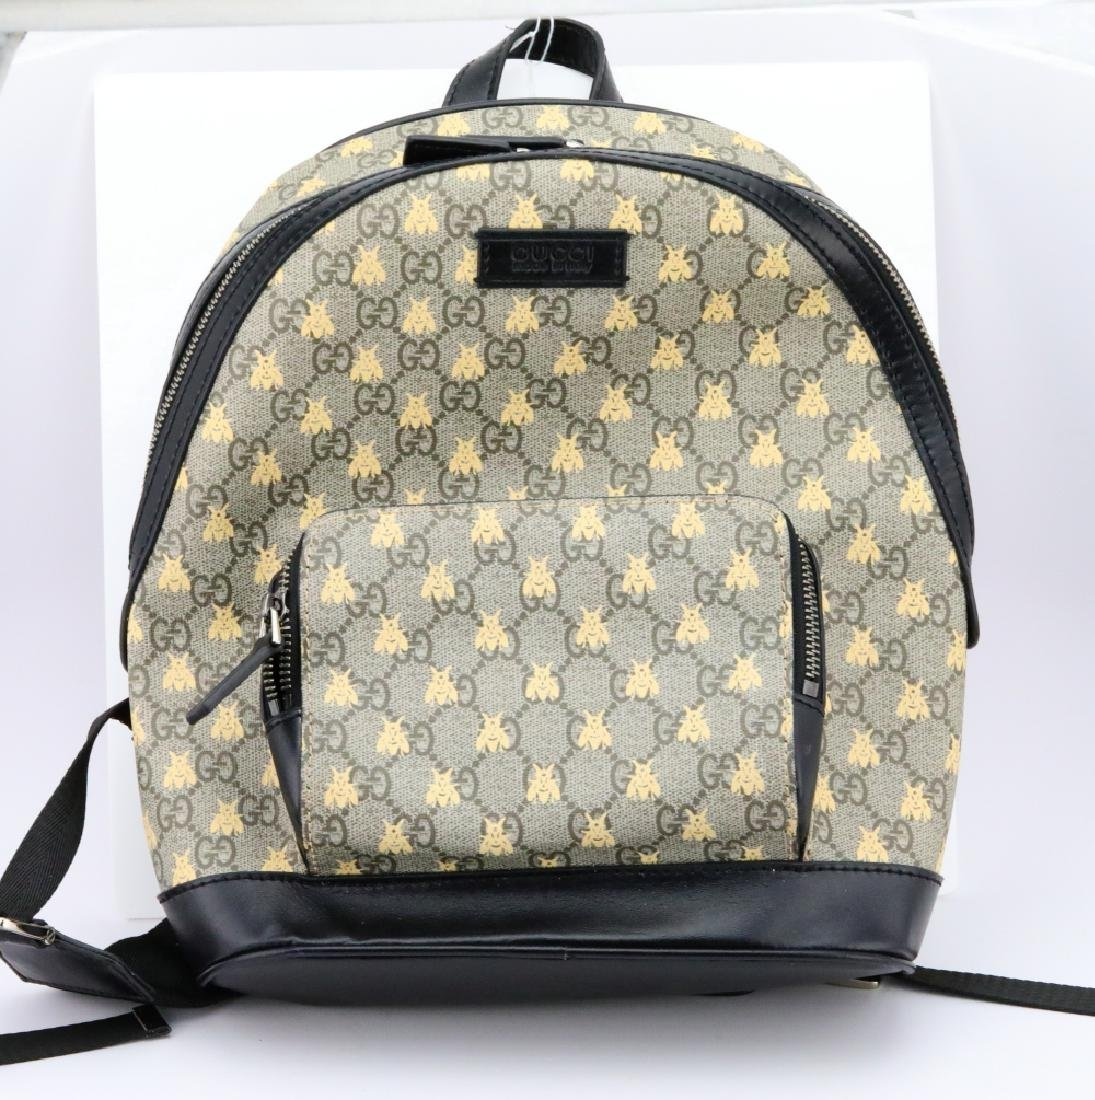 Gucci GG Supreme Bees Backpack (Back Ordered)